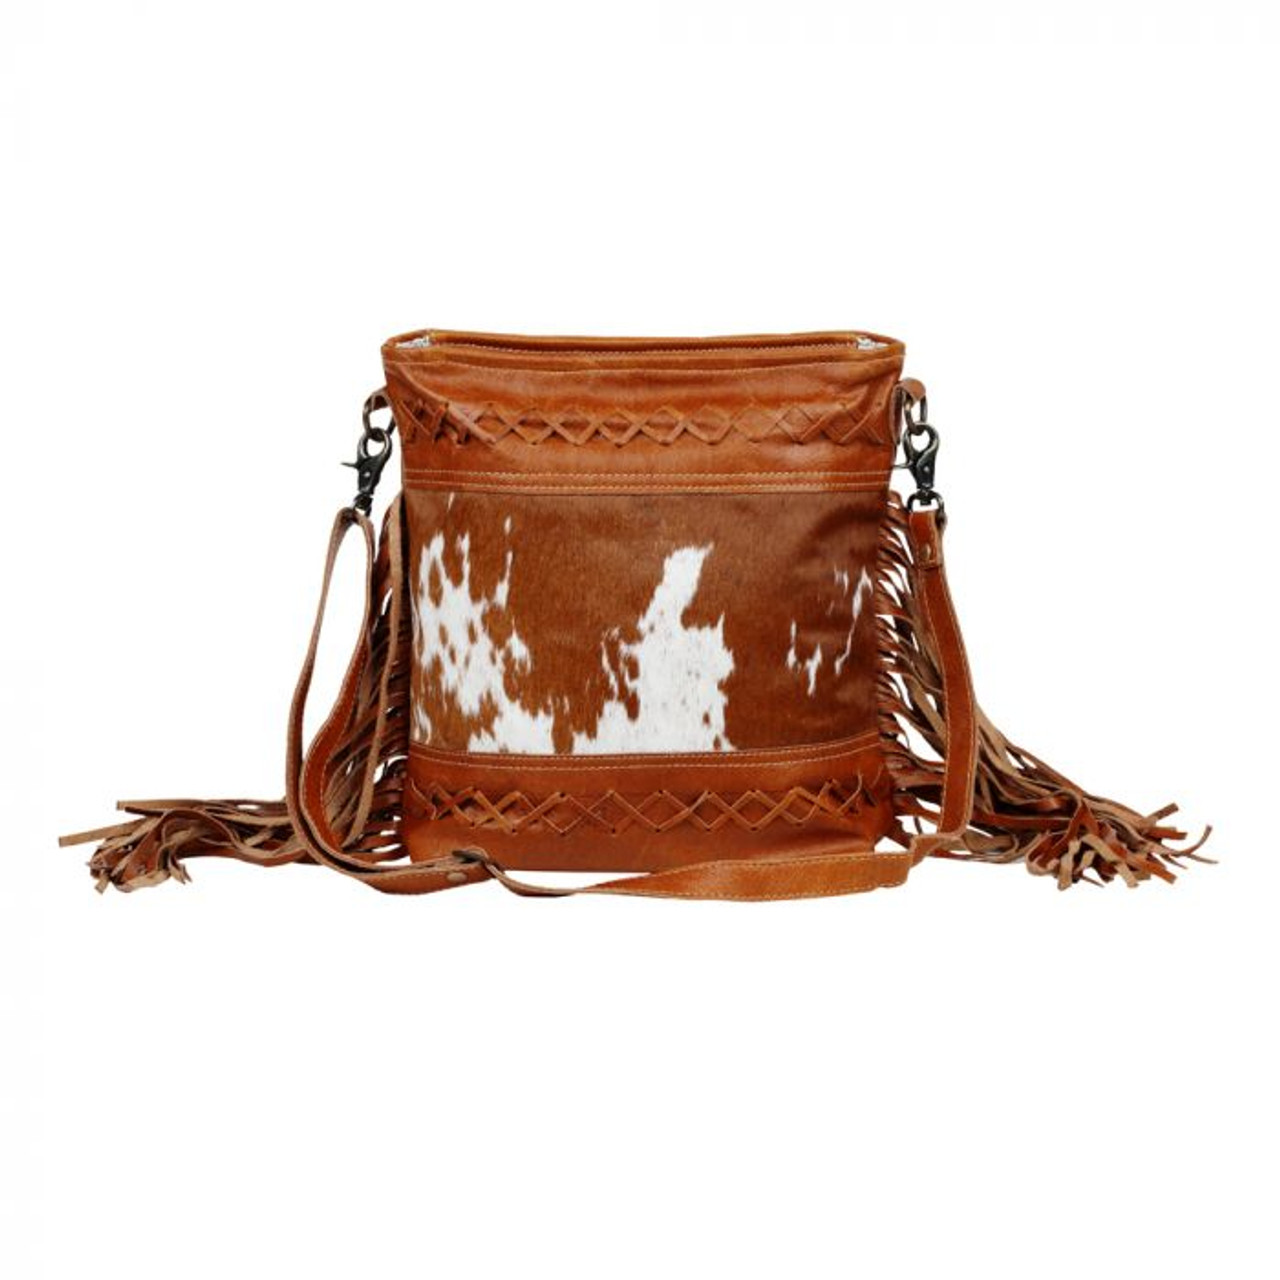 Myra Bag Leather And Hair On Hide Purse Crutcher S Western Wear Our bags style choose your. myra bag leather and hair on hide purse